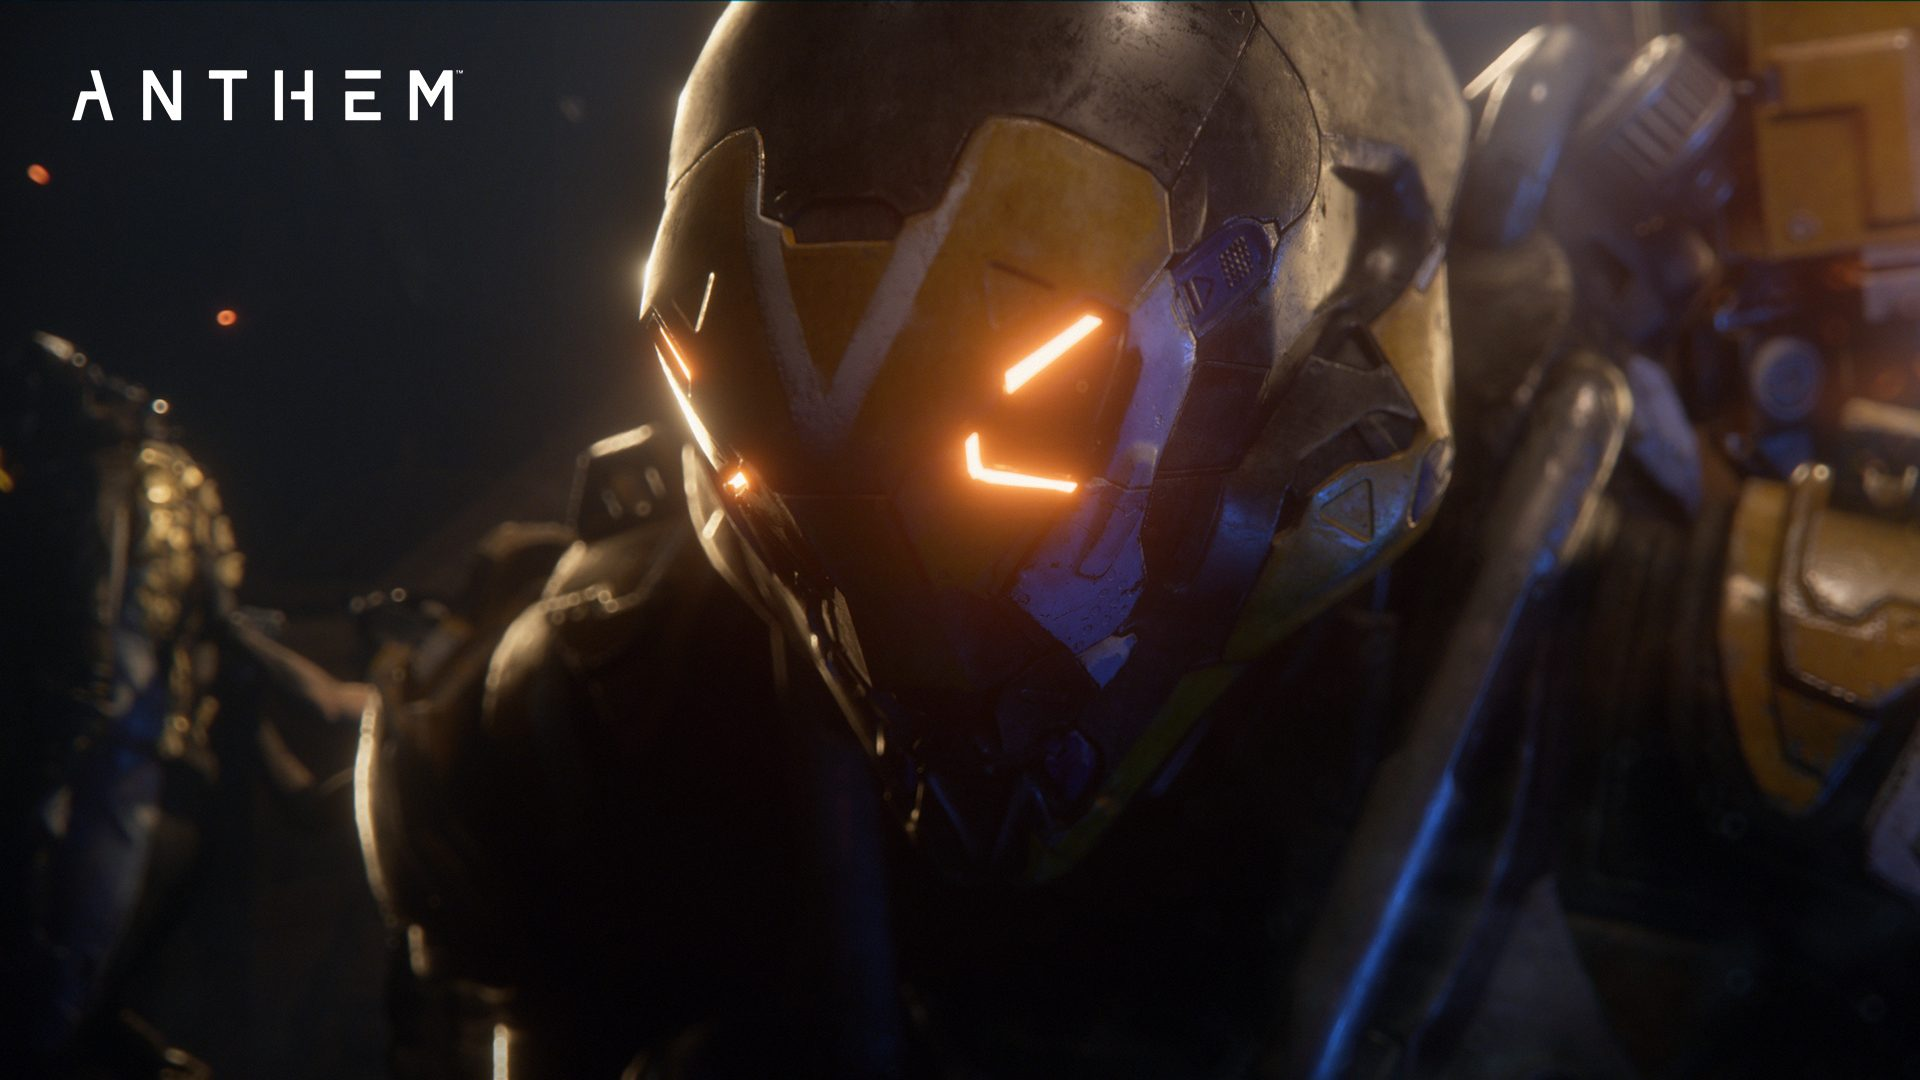 anthem official teaser trailer.jpg.adapt.crop16x9.1920w